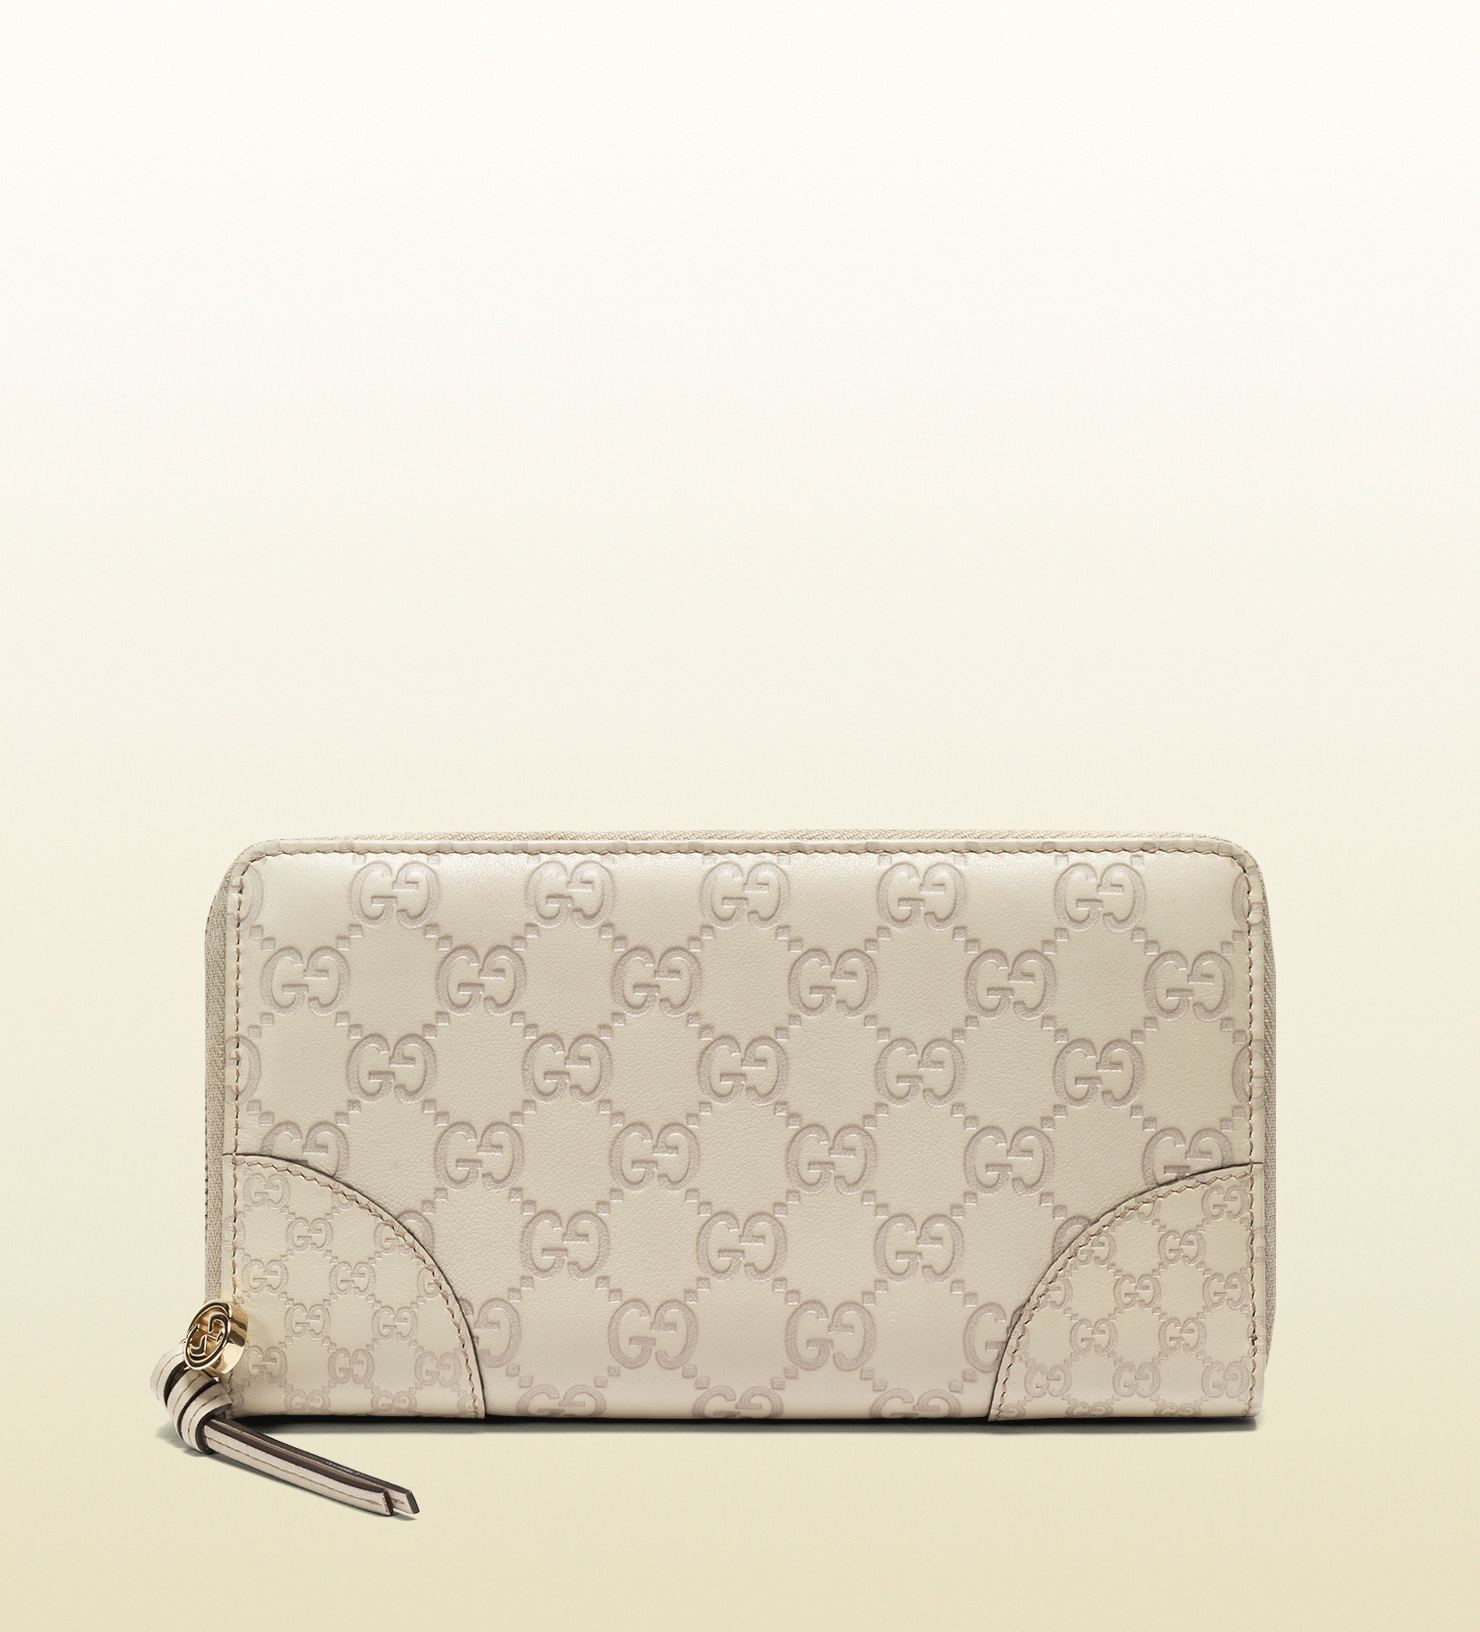 Lyst - Gucci Bree Ssima Leather Zip Around Wallet in White